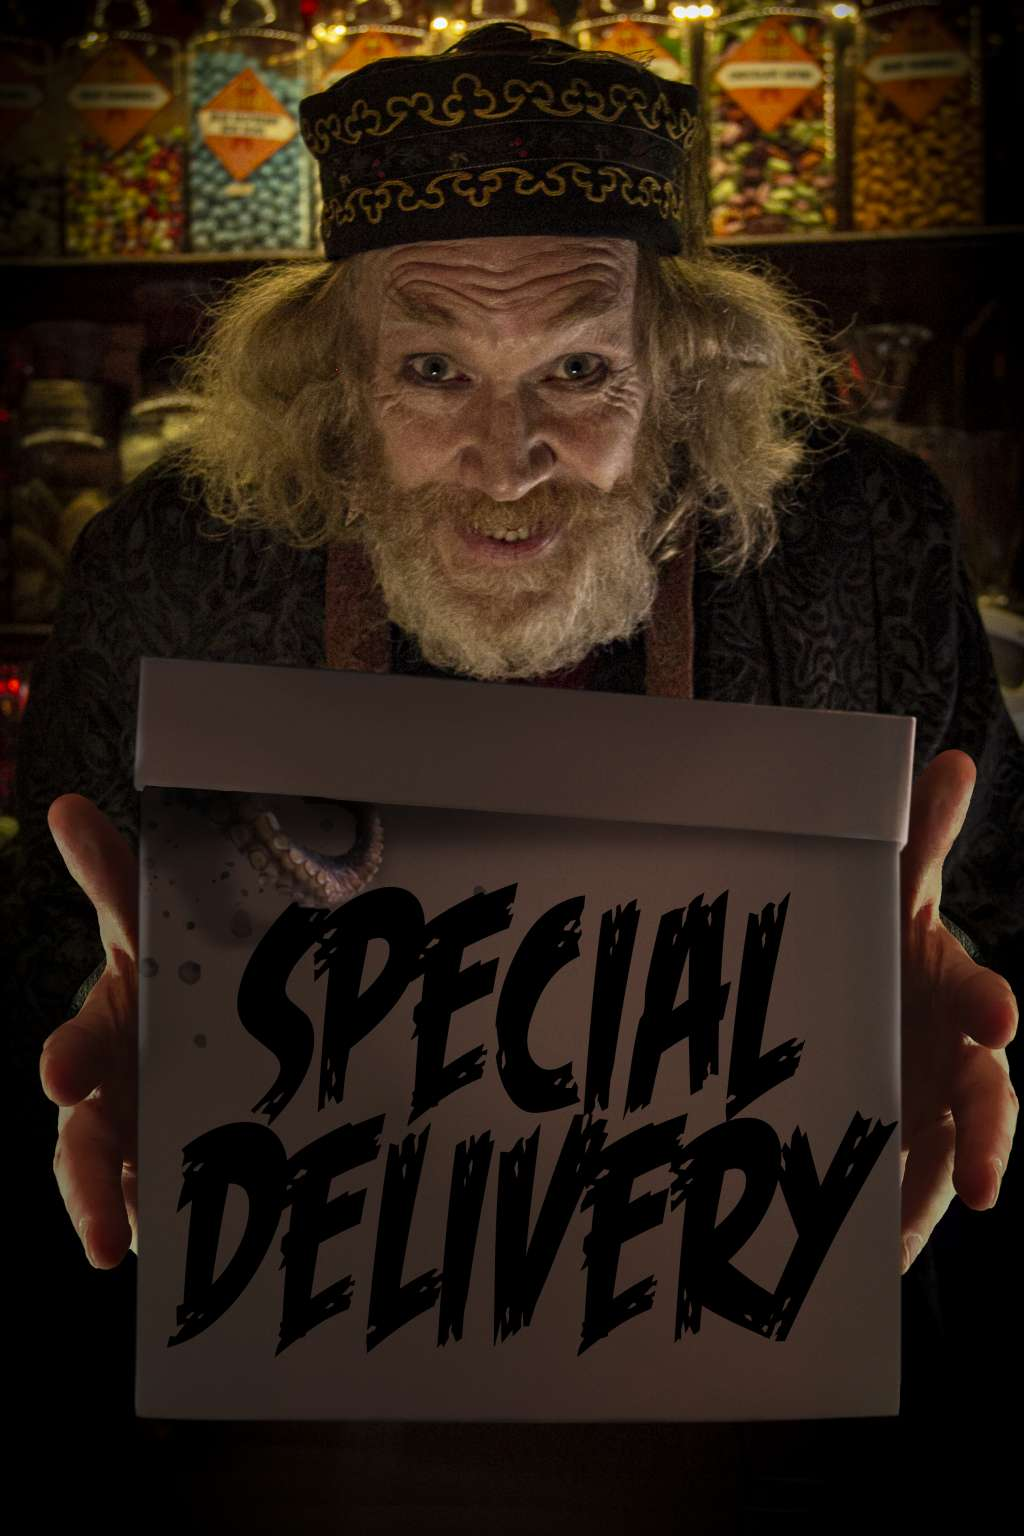 Special Delivery kapak